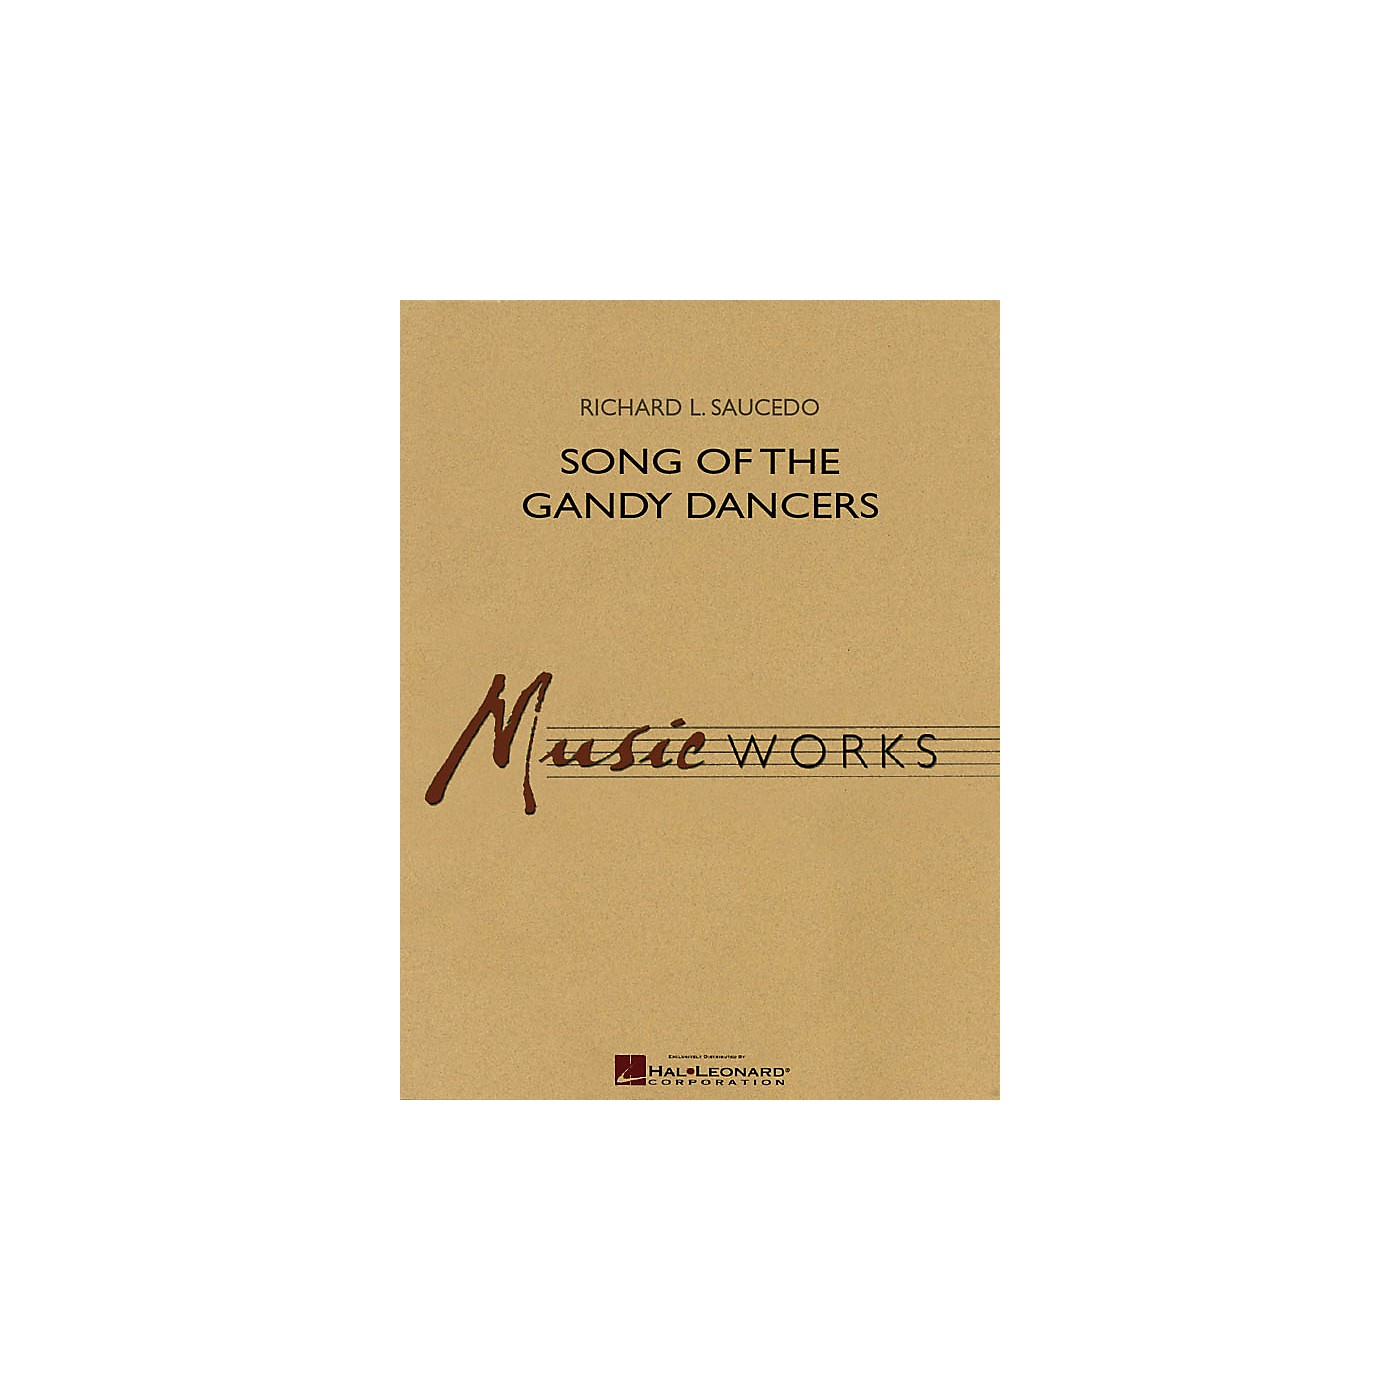 Hal Leonard Song of the Gandy Dancers Concert Band Level 4 Composed by Richard L. Saucedo thumbnail